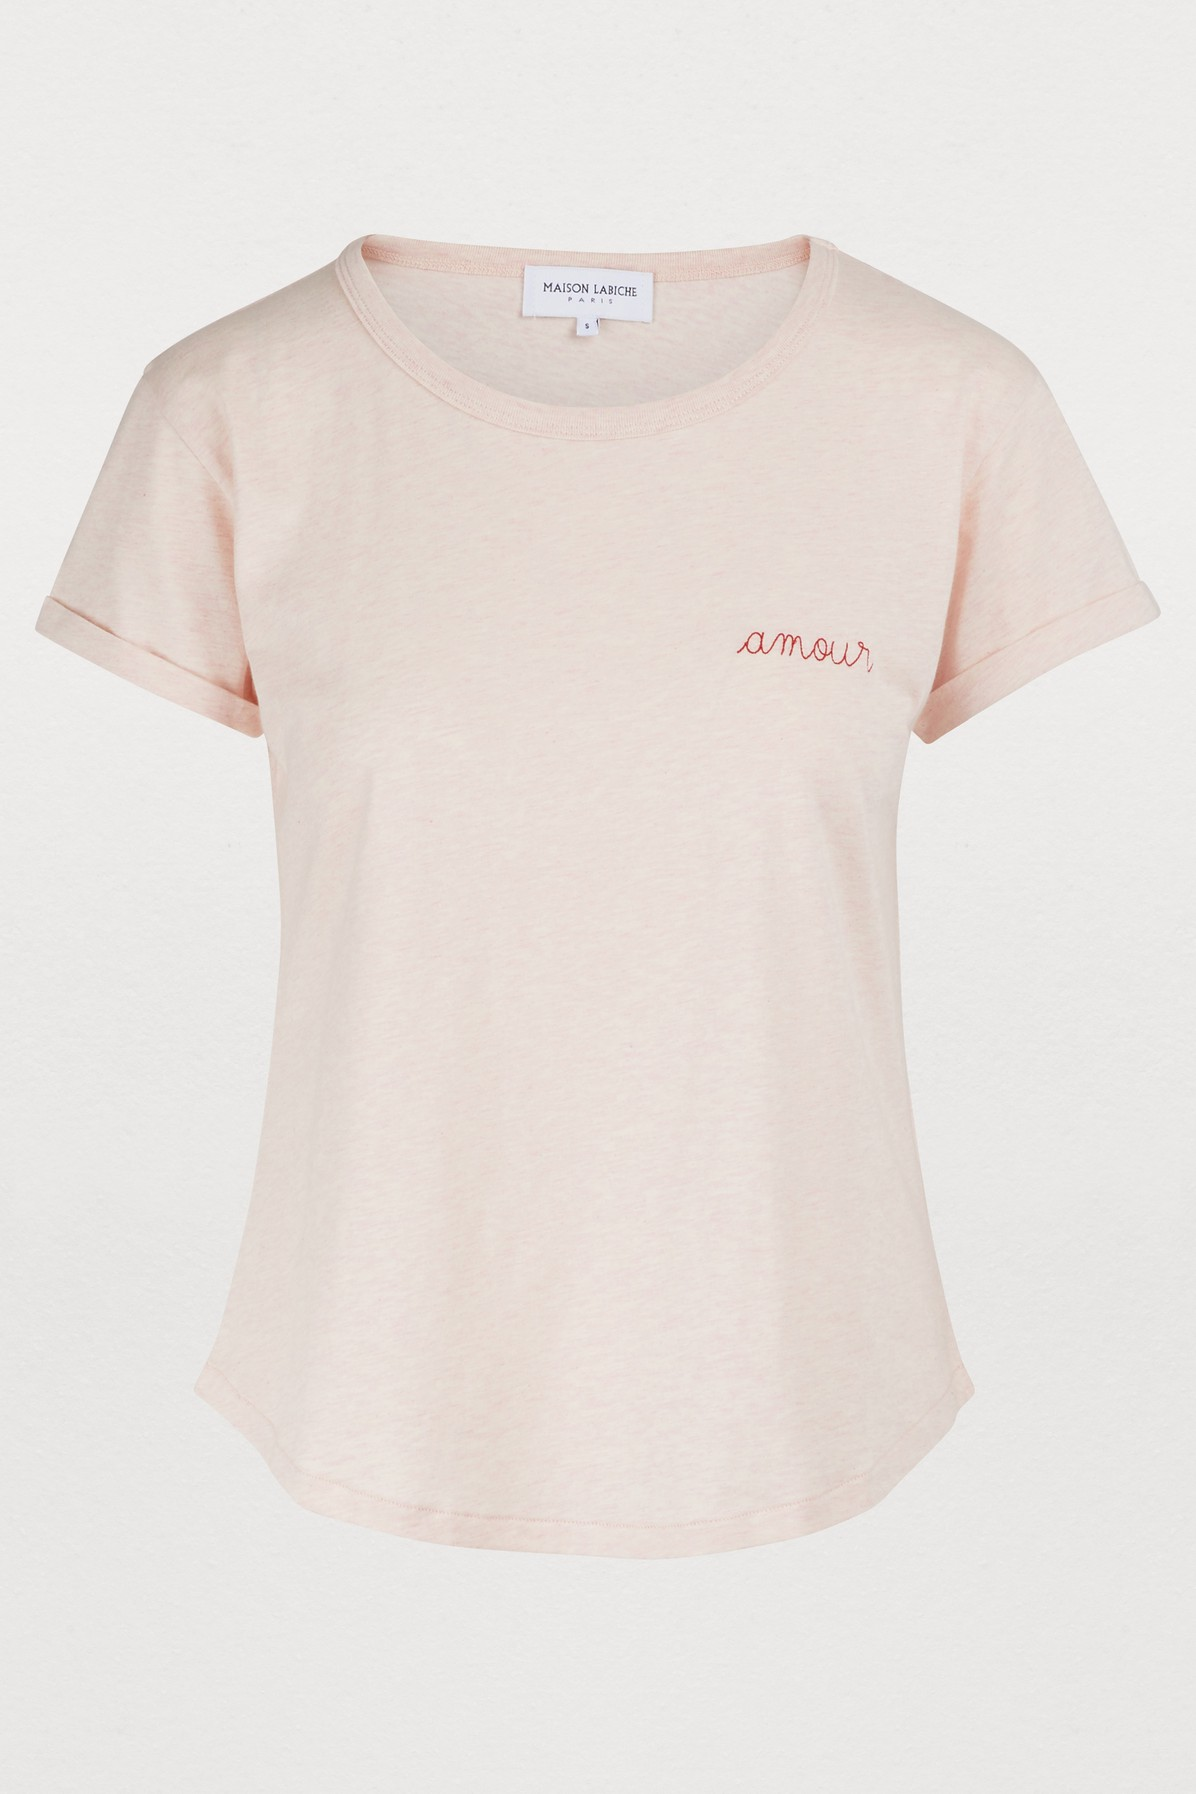 Maison Labiche Amour T Shirt In Heather Pink Modesens